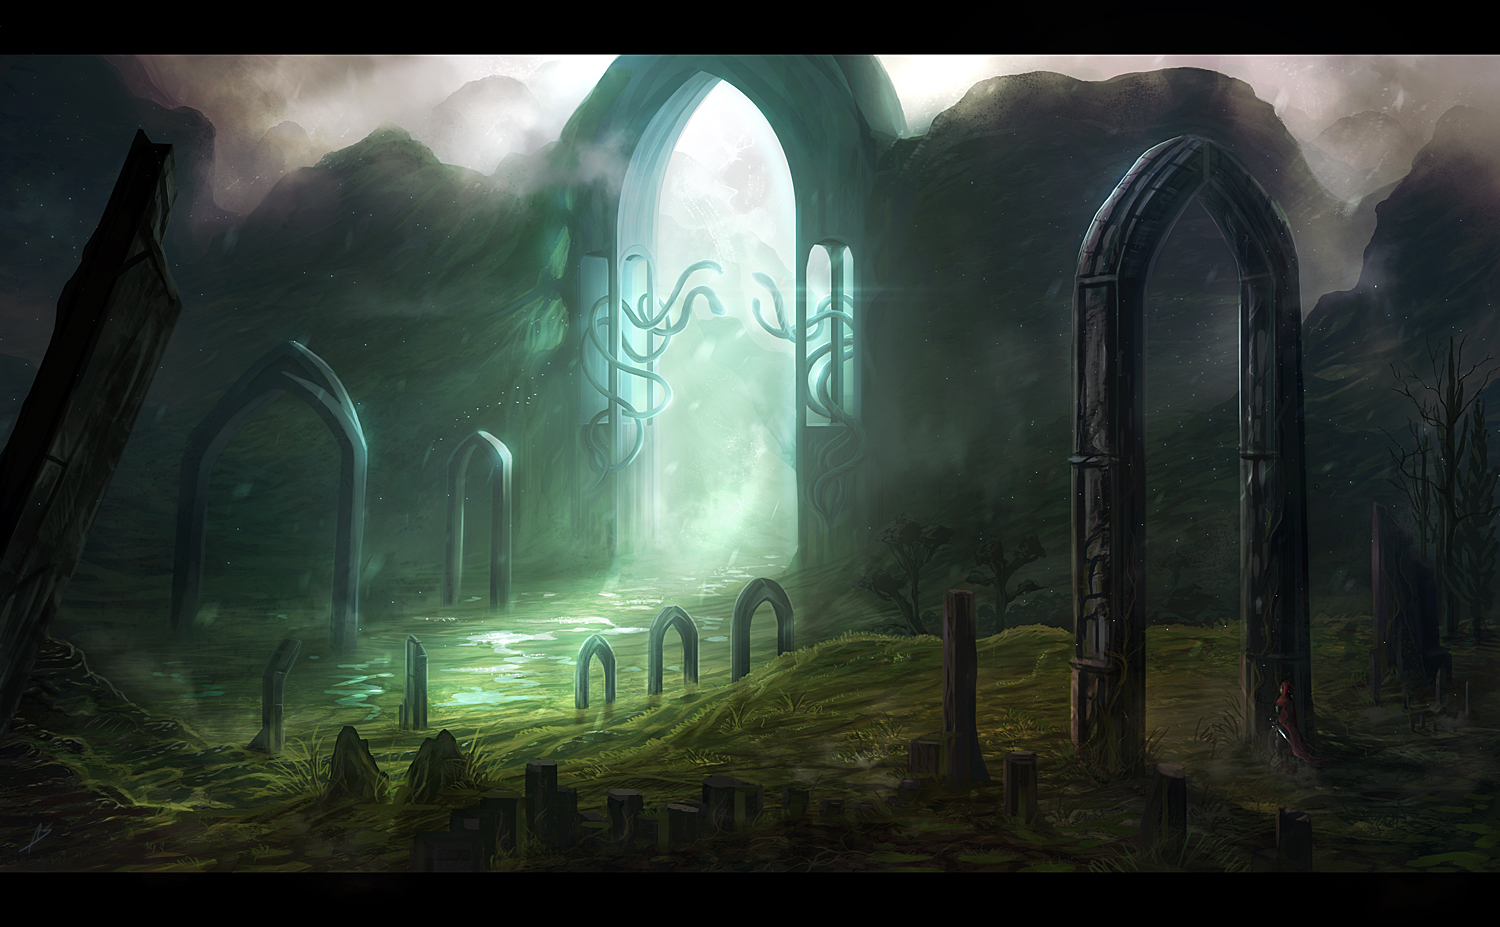 The Serpent's Folly by AlynSpiller